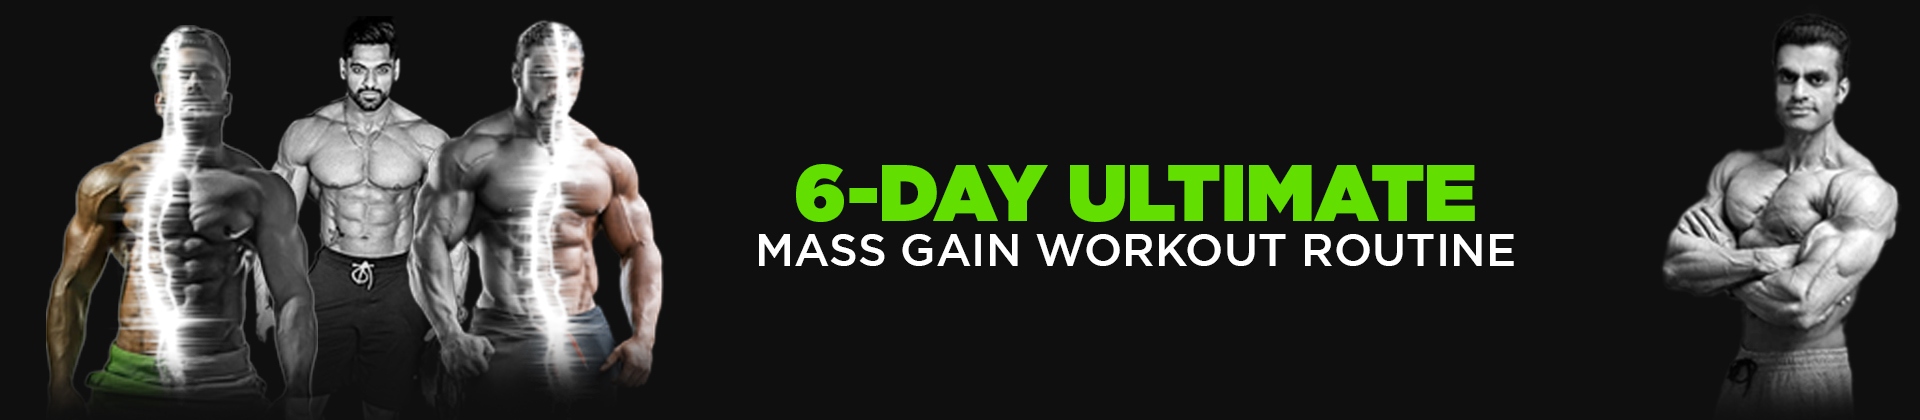 6-Day Ultimate Mass Gain Workout Routine